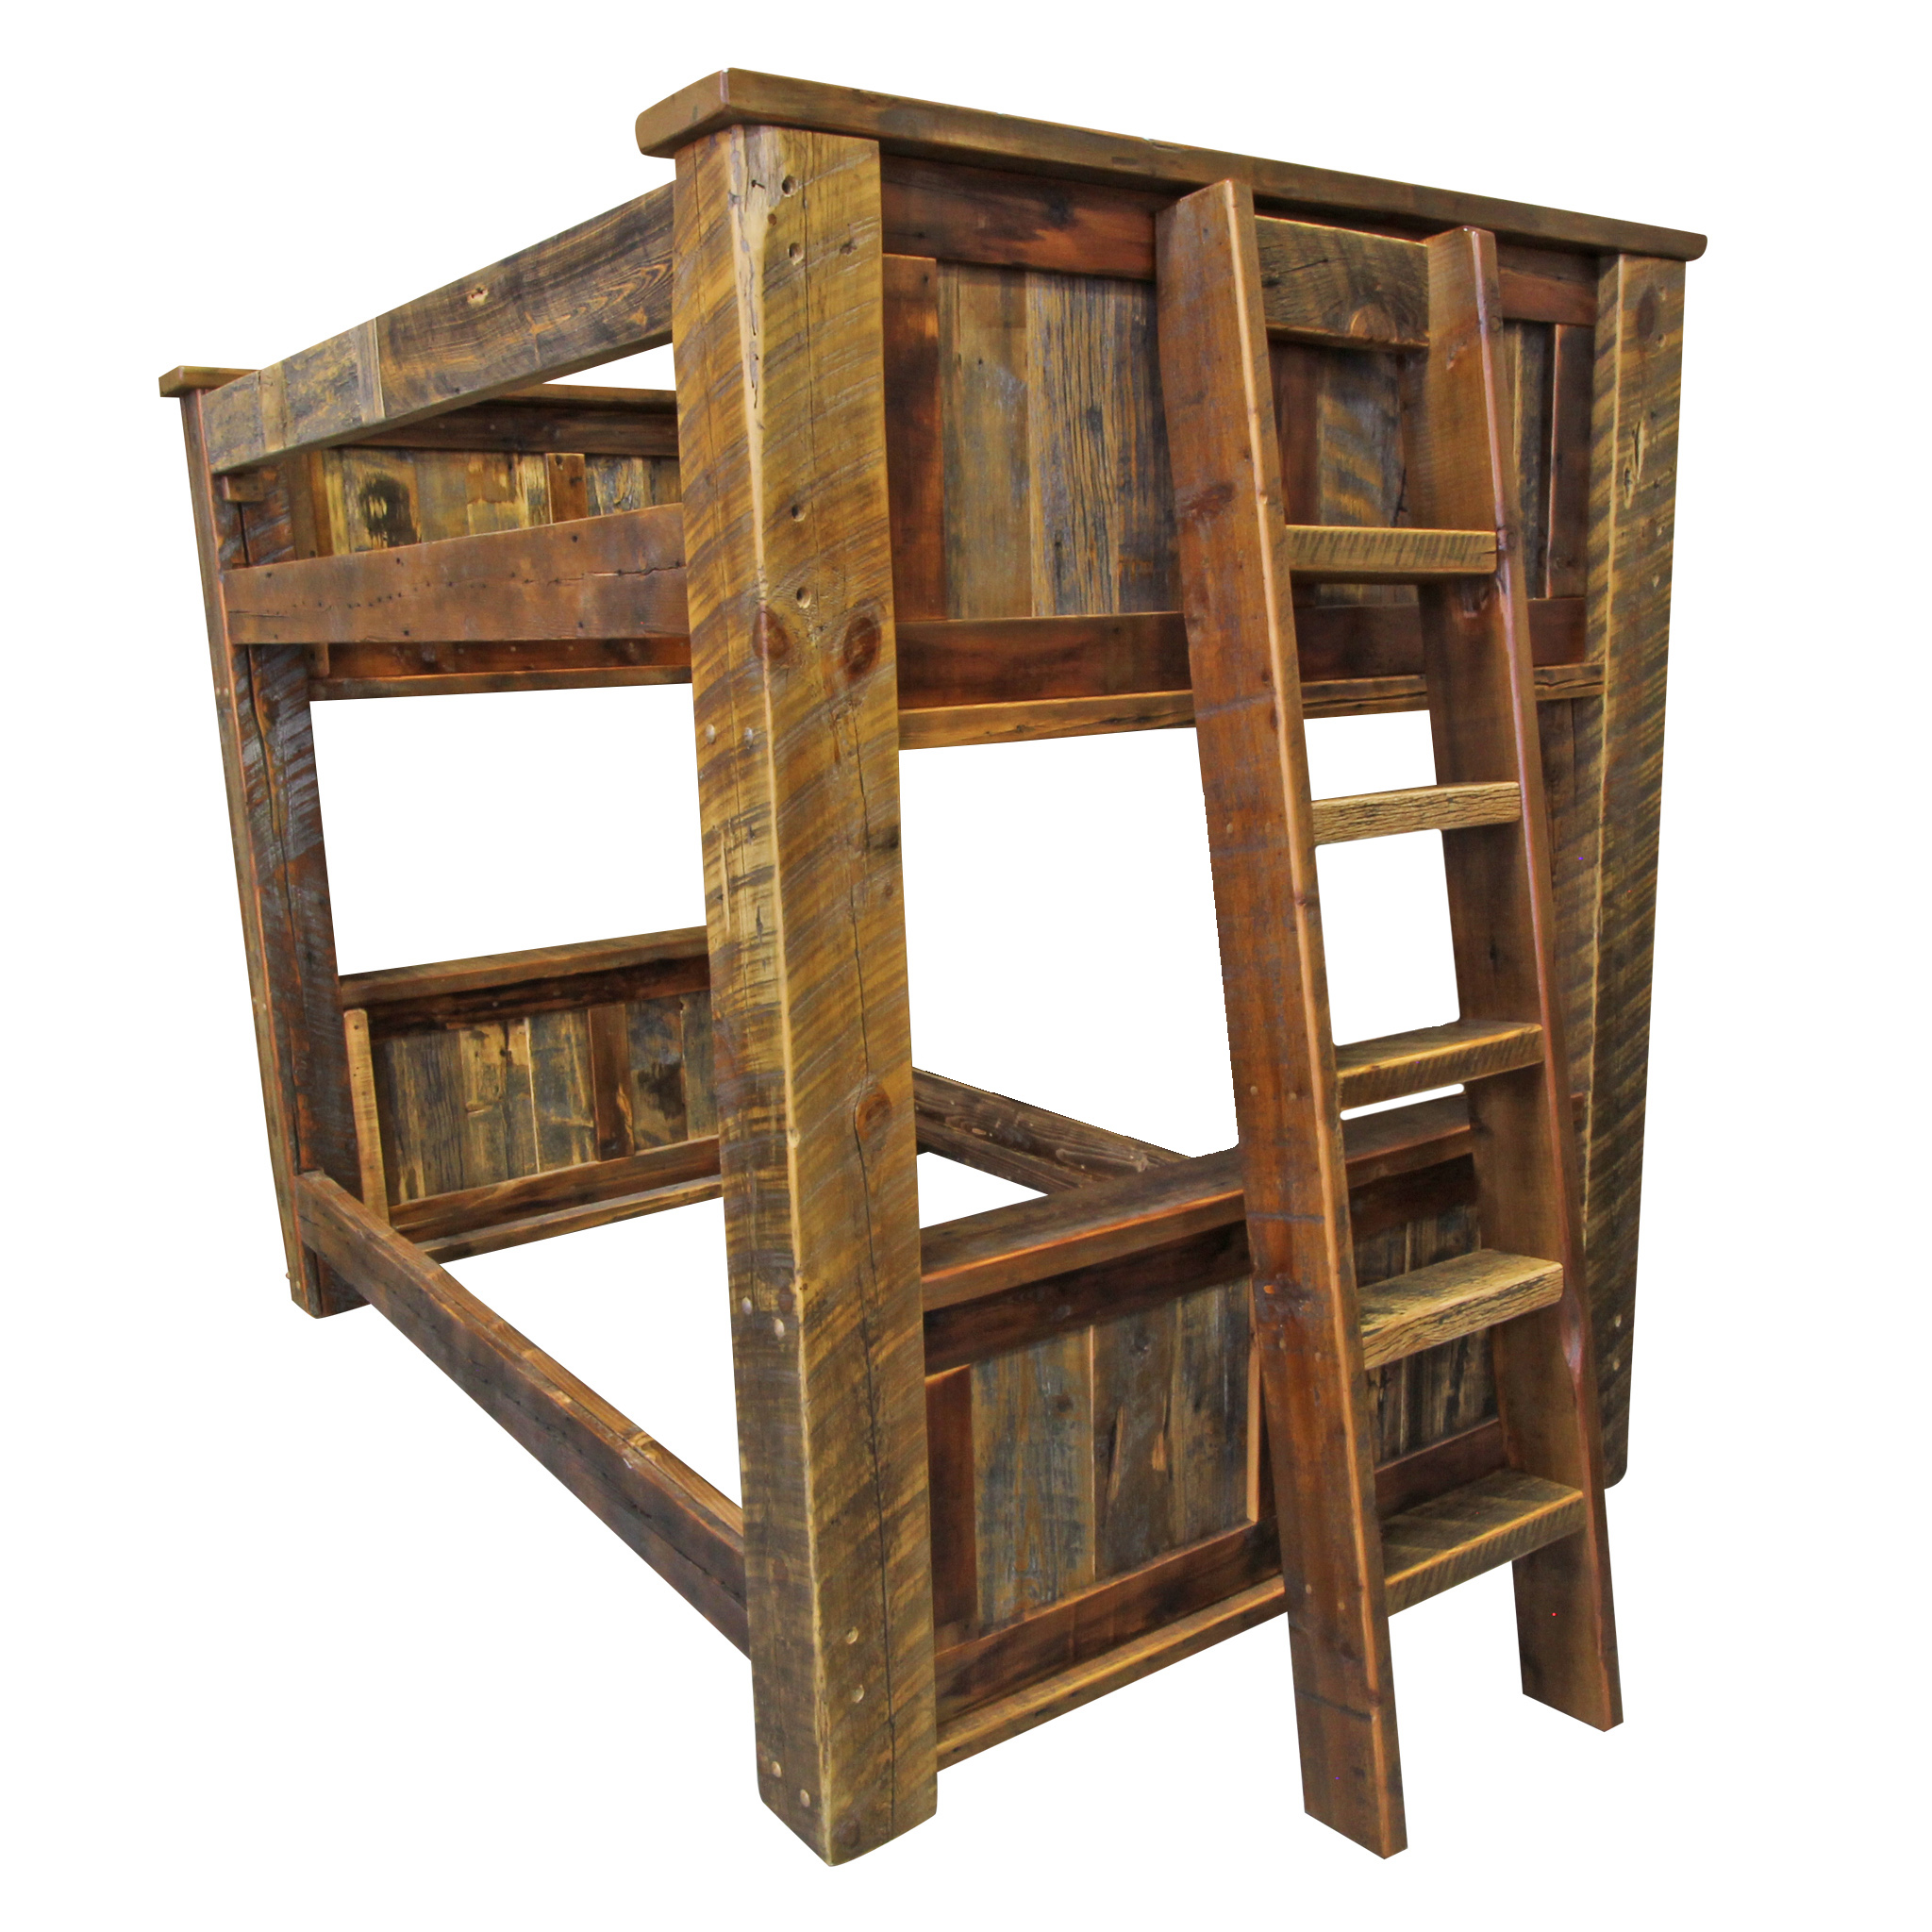 Big Wooden Bunk Beds Marcuscable Com